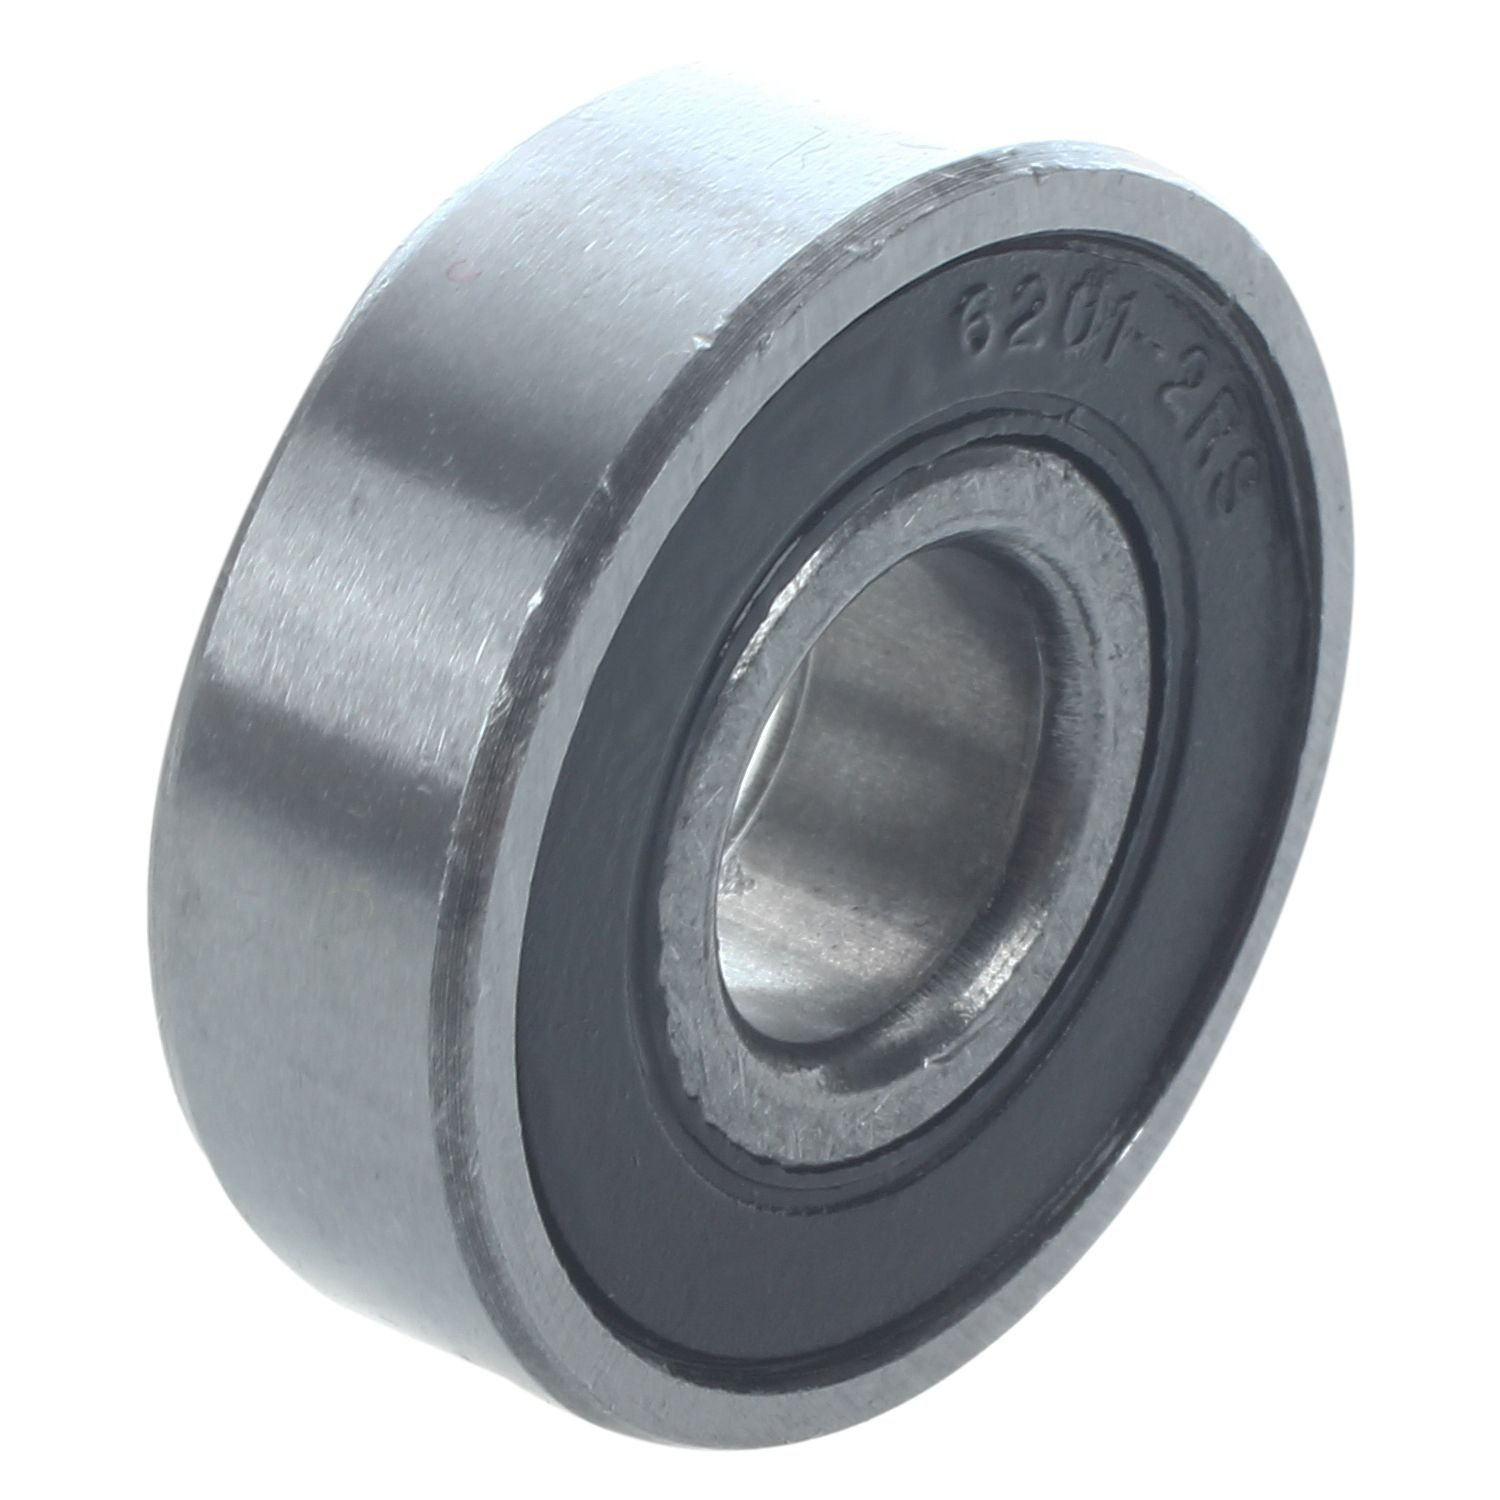 SODIAL(R) Ball bearing Bearing type: 6201 (12x32x10 mm) Cover: 2RS Quantity per pack: 1 PCS by SODIAL(R) (Image #1)